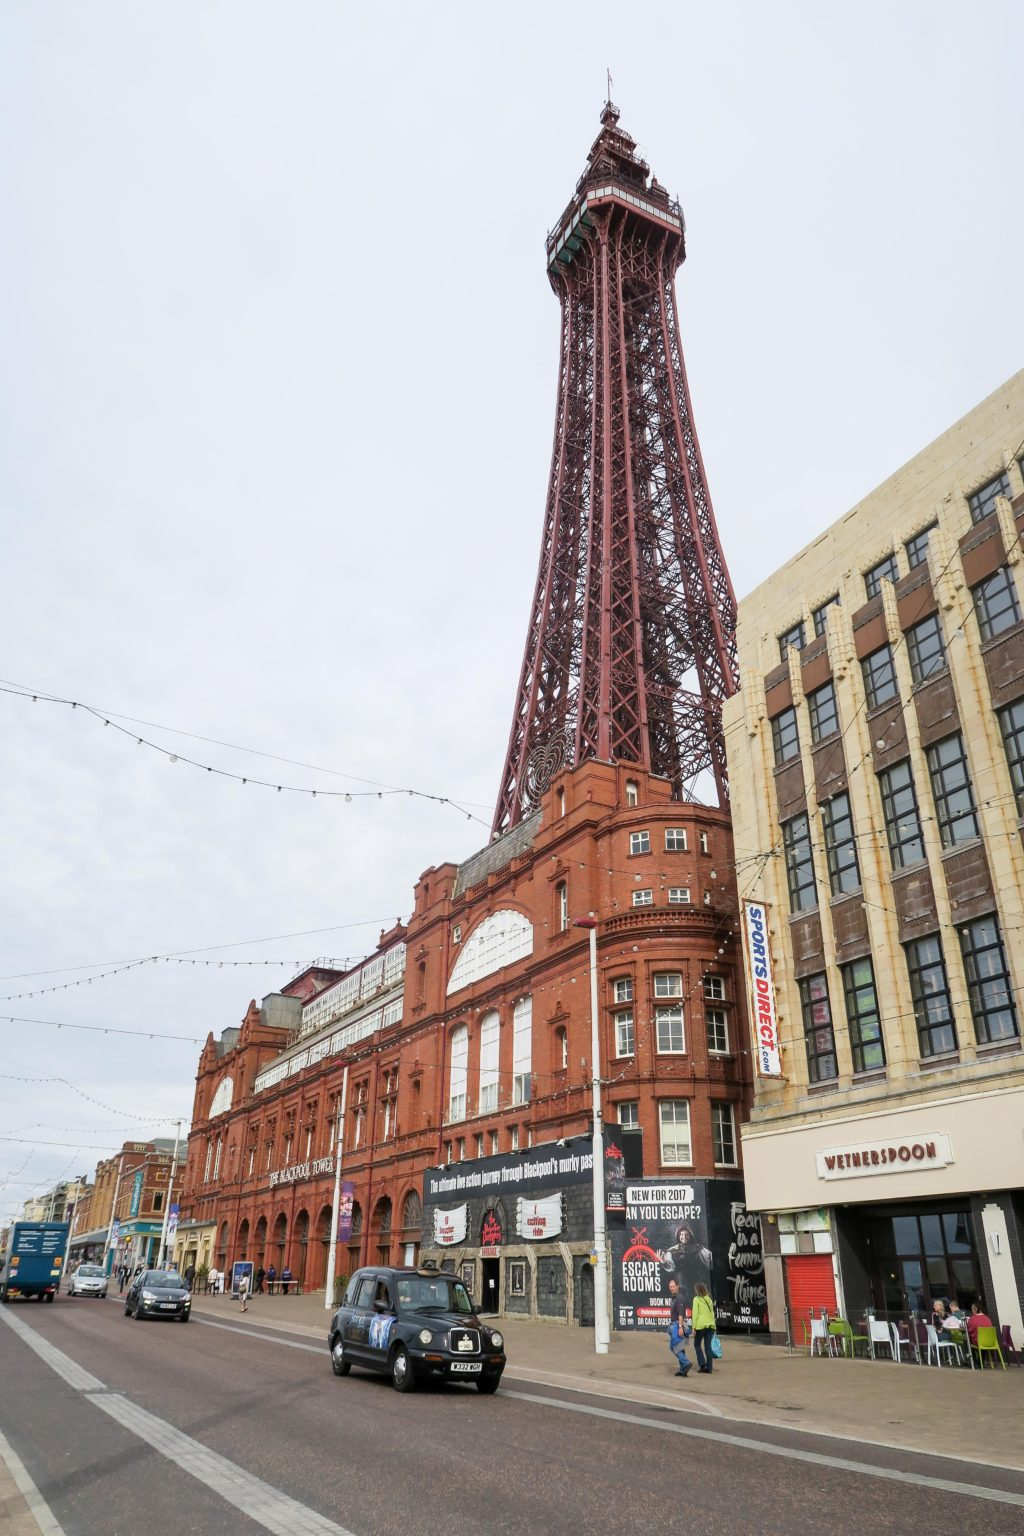 Blackpool Travel Diary & Blog by Rosie Andre (England, UK, United Kingdom, North, Northern, Manchester, Liverpool, Lancashire, Tower, Pleasure Beach, Illuminations, Destination, Staycation, Wanderlust, Photo, Photography)